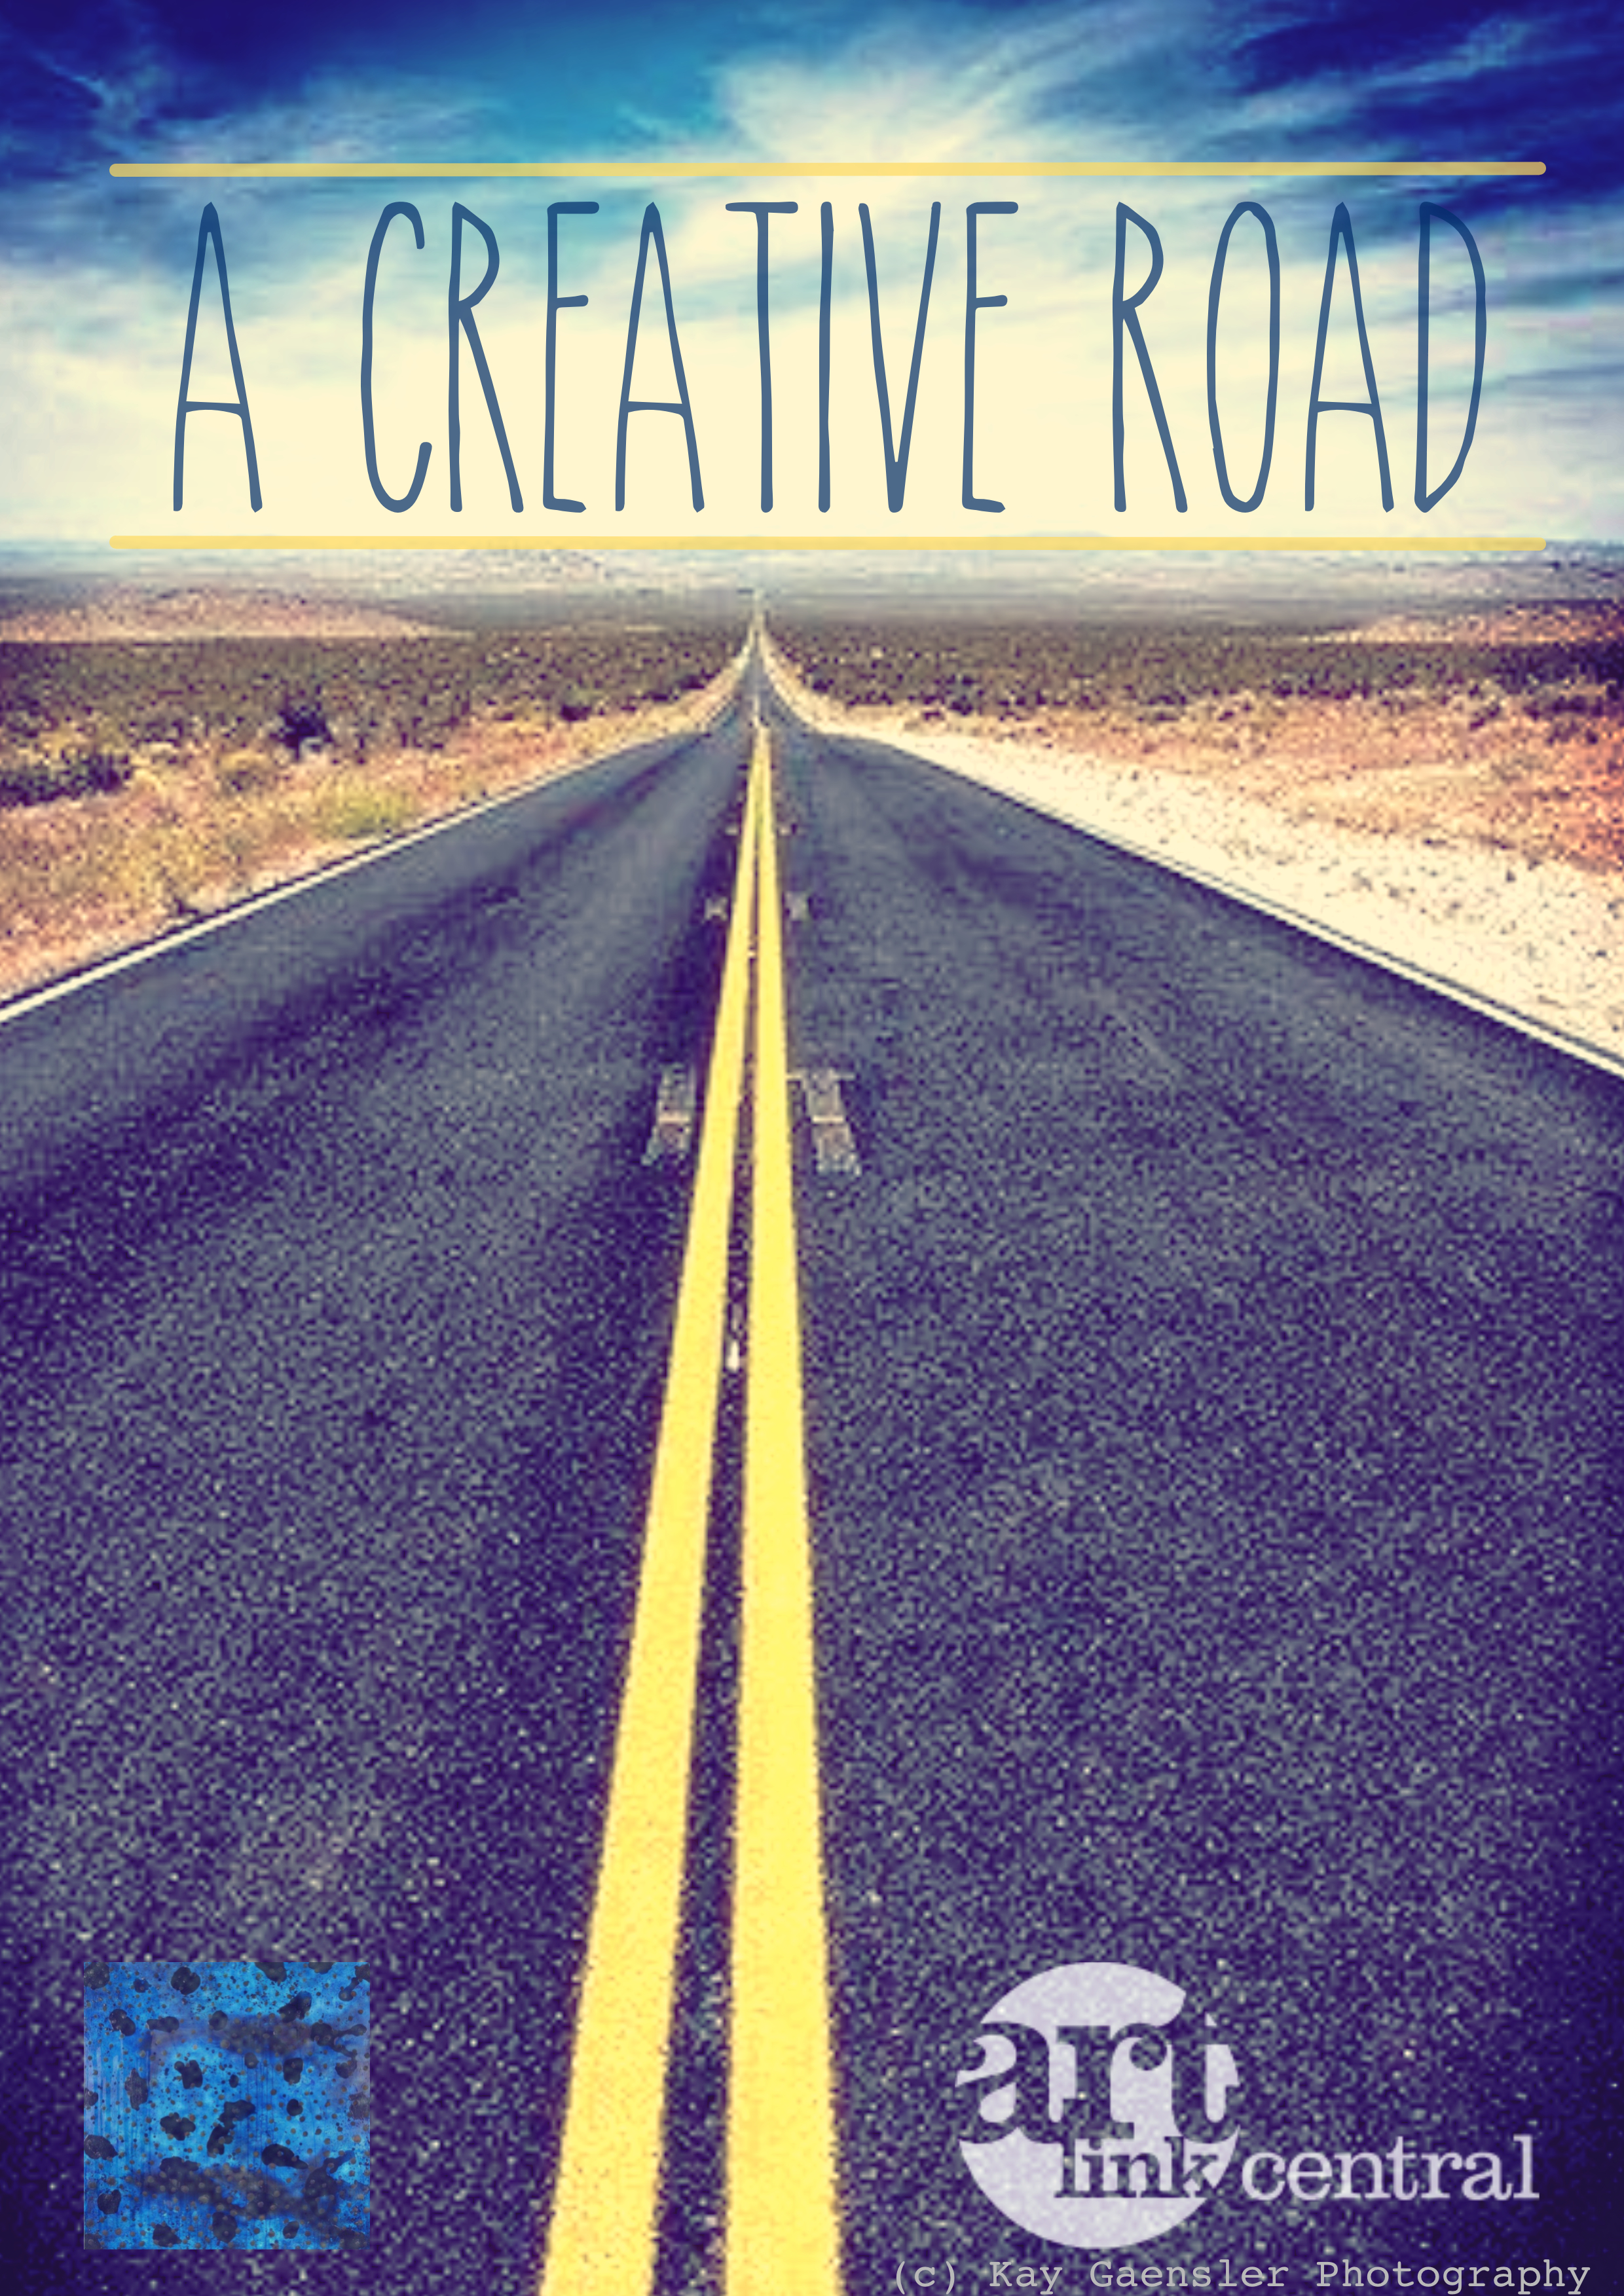 Poster image for A Creative road